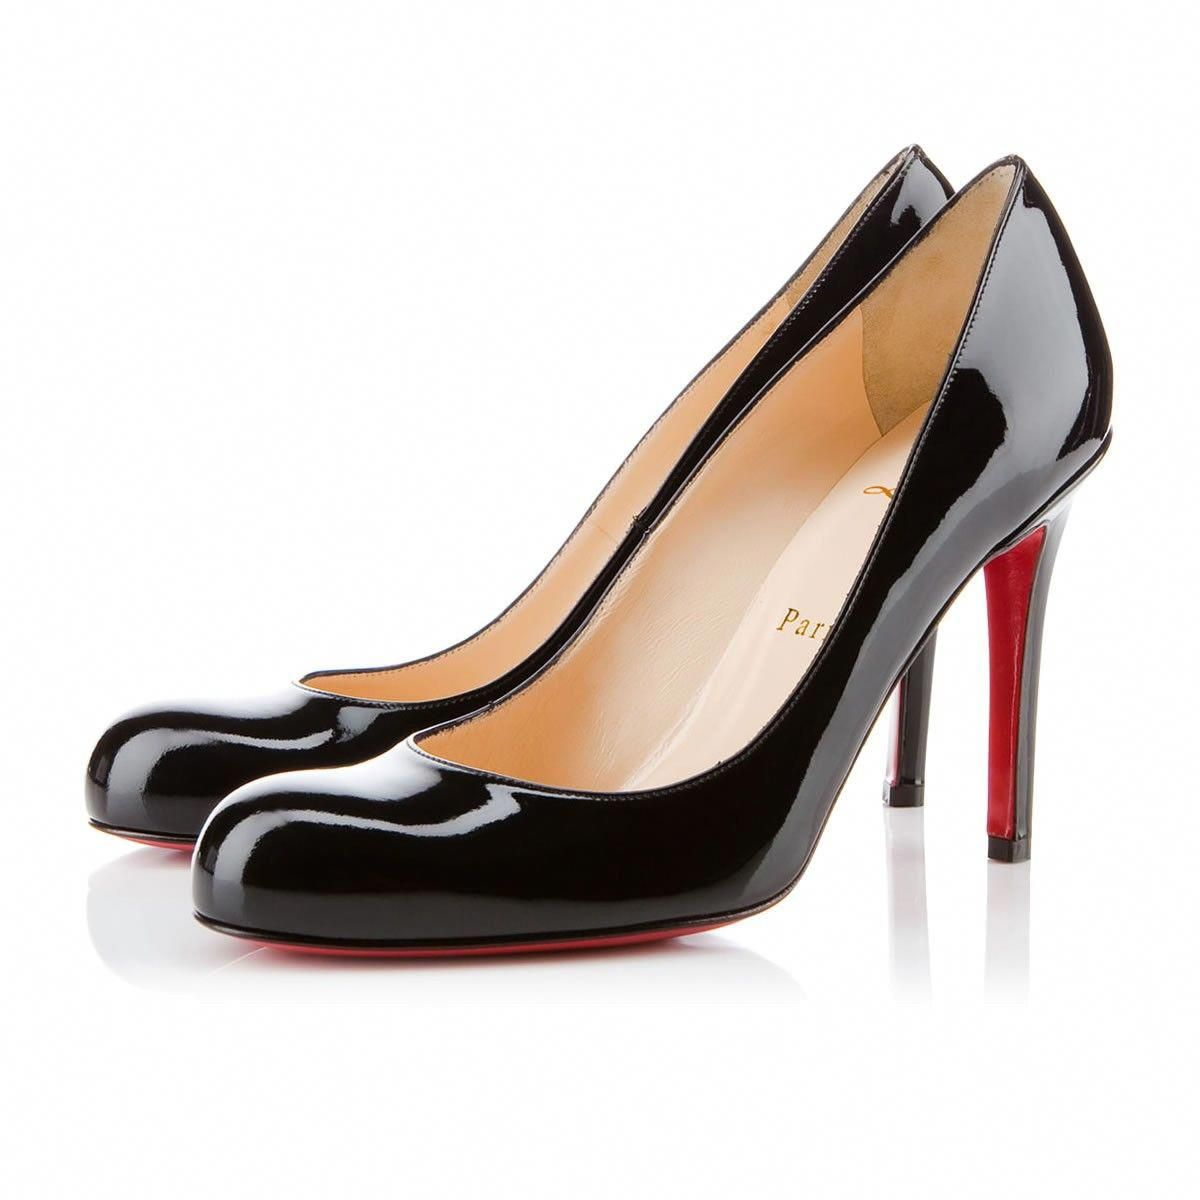 76a211fe8504  675 Simple Pump 100mm Black Patent Leather  ChristianLouboutin ...